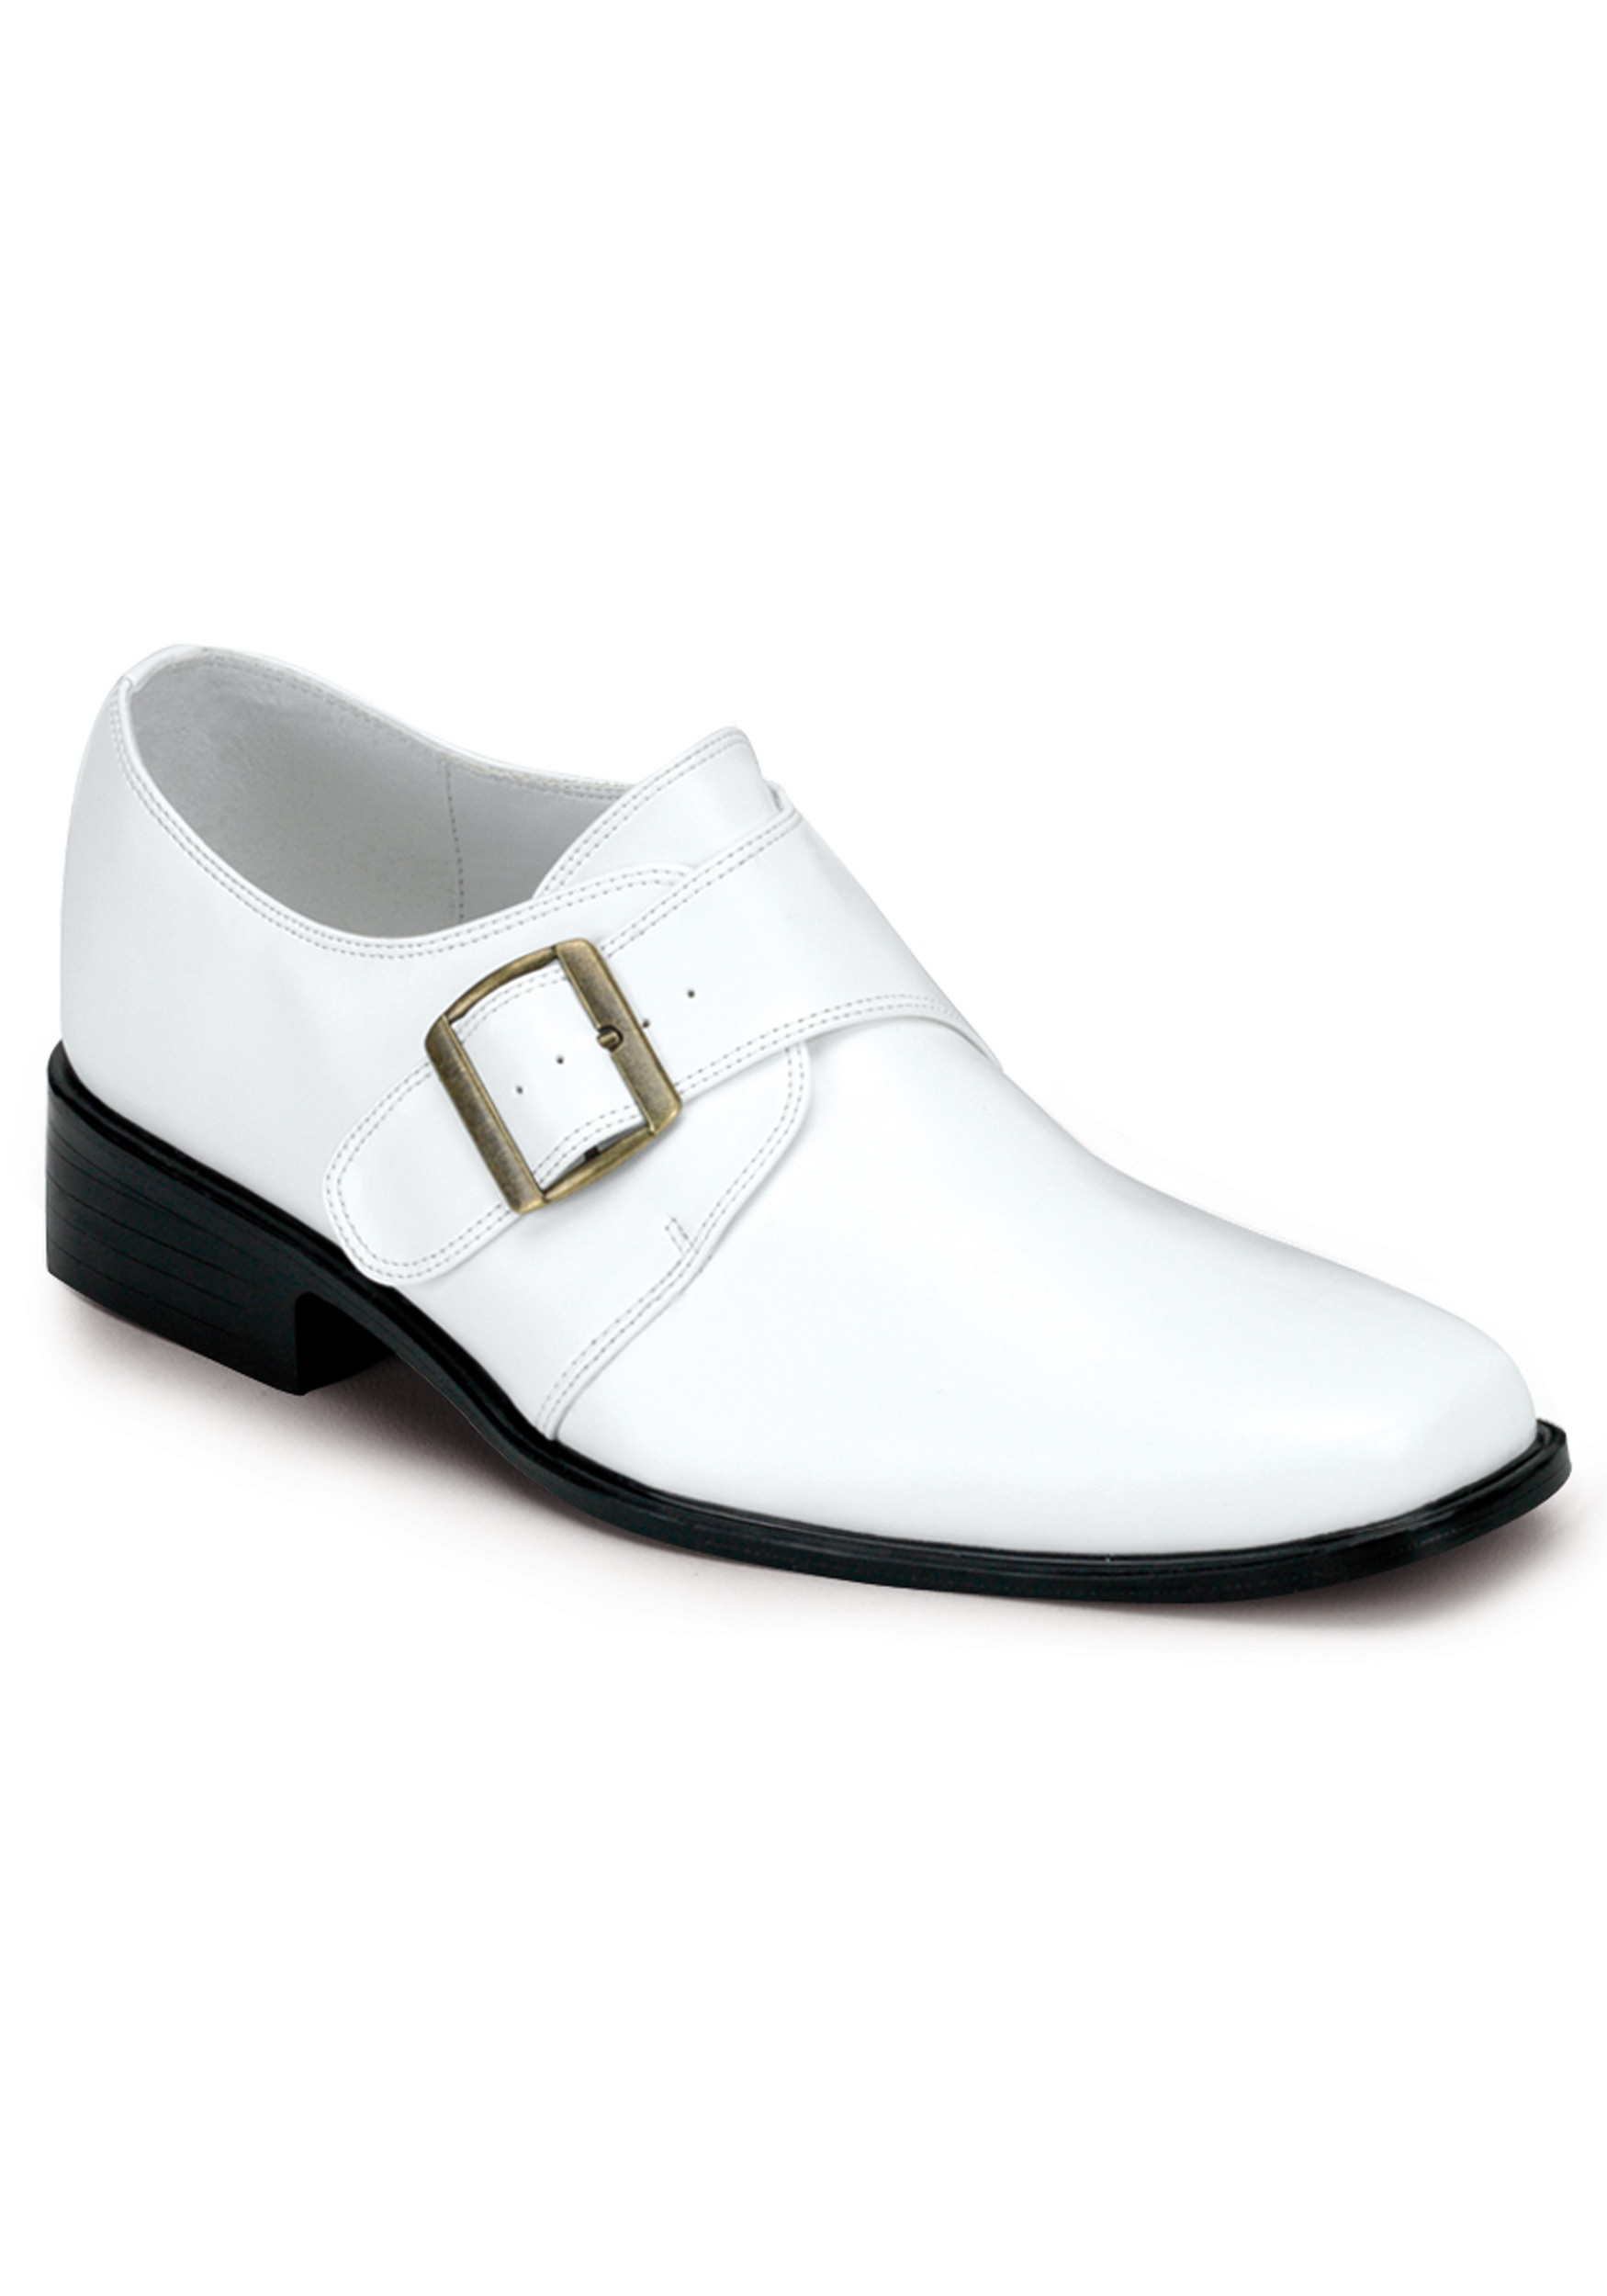 Disco Loafers for Men